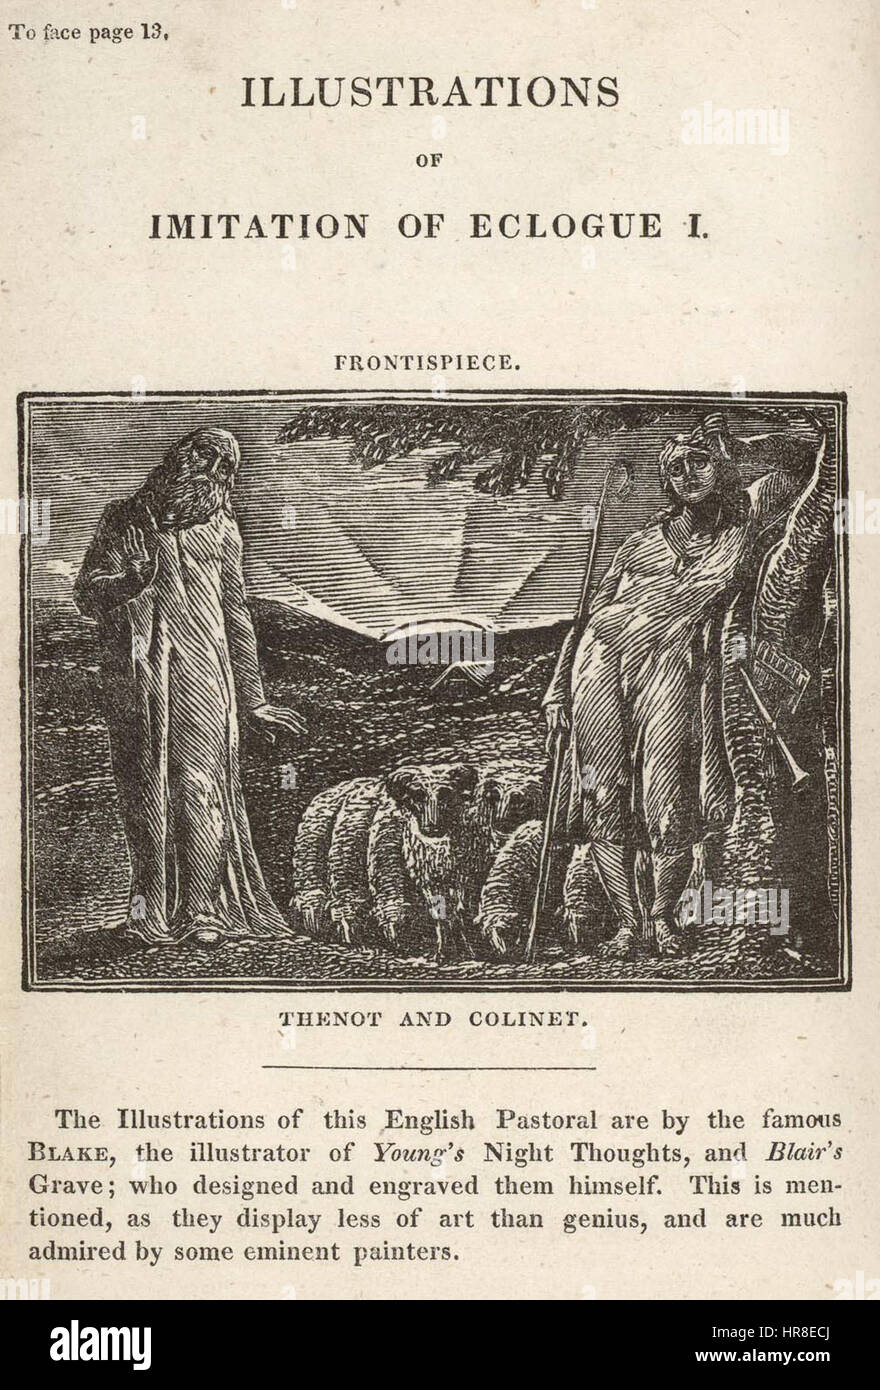 The Pastorals of Virgil, copy 1, object 5 Frontispiece bb504 2 5 com 300 - Stock Image